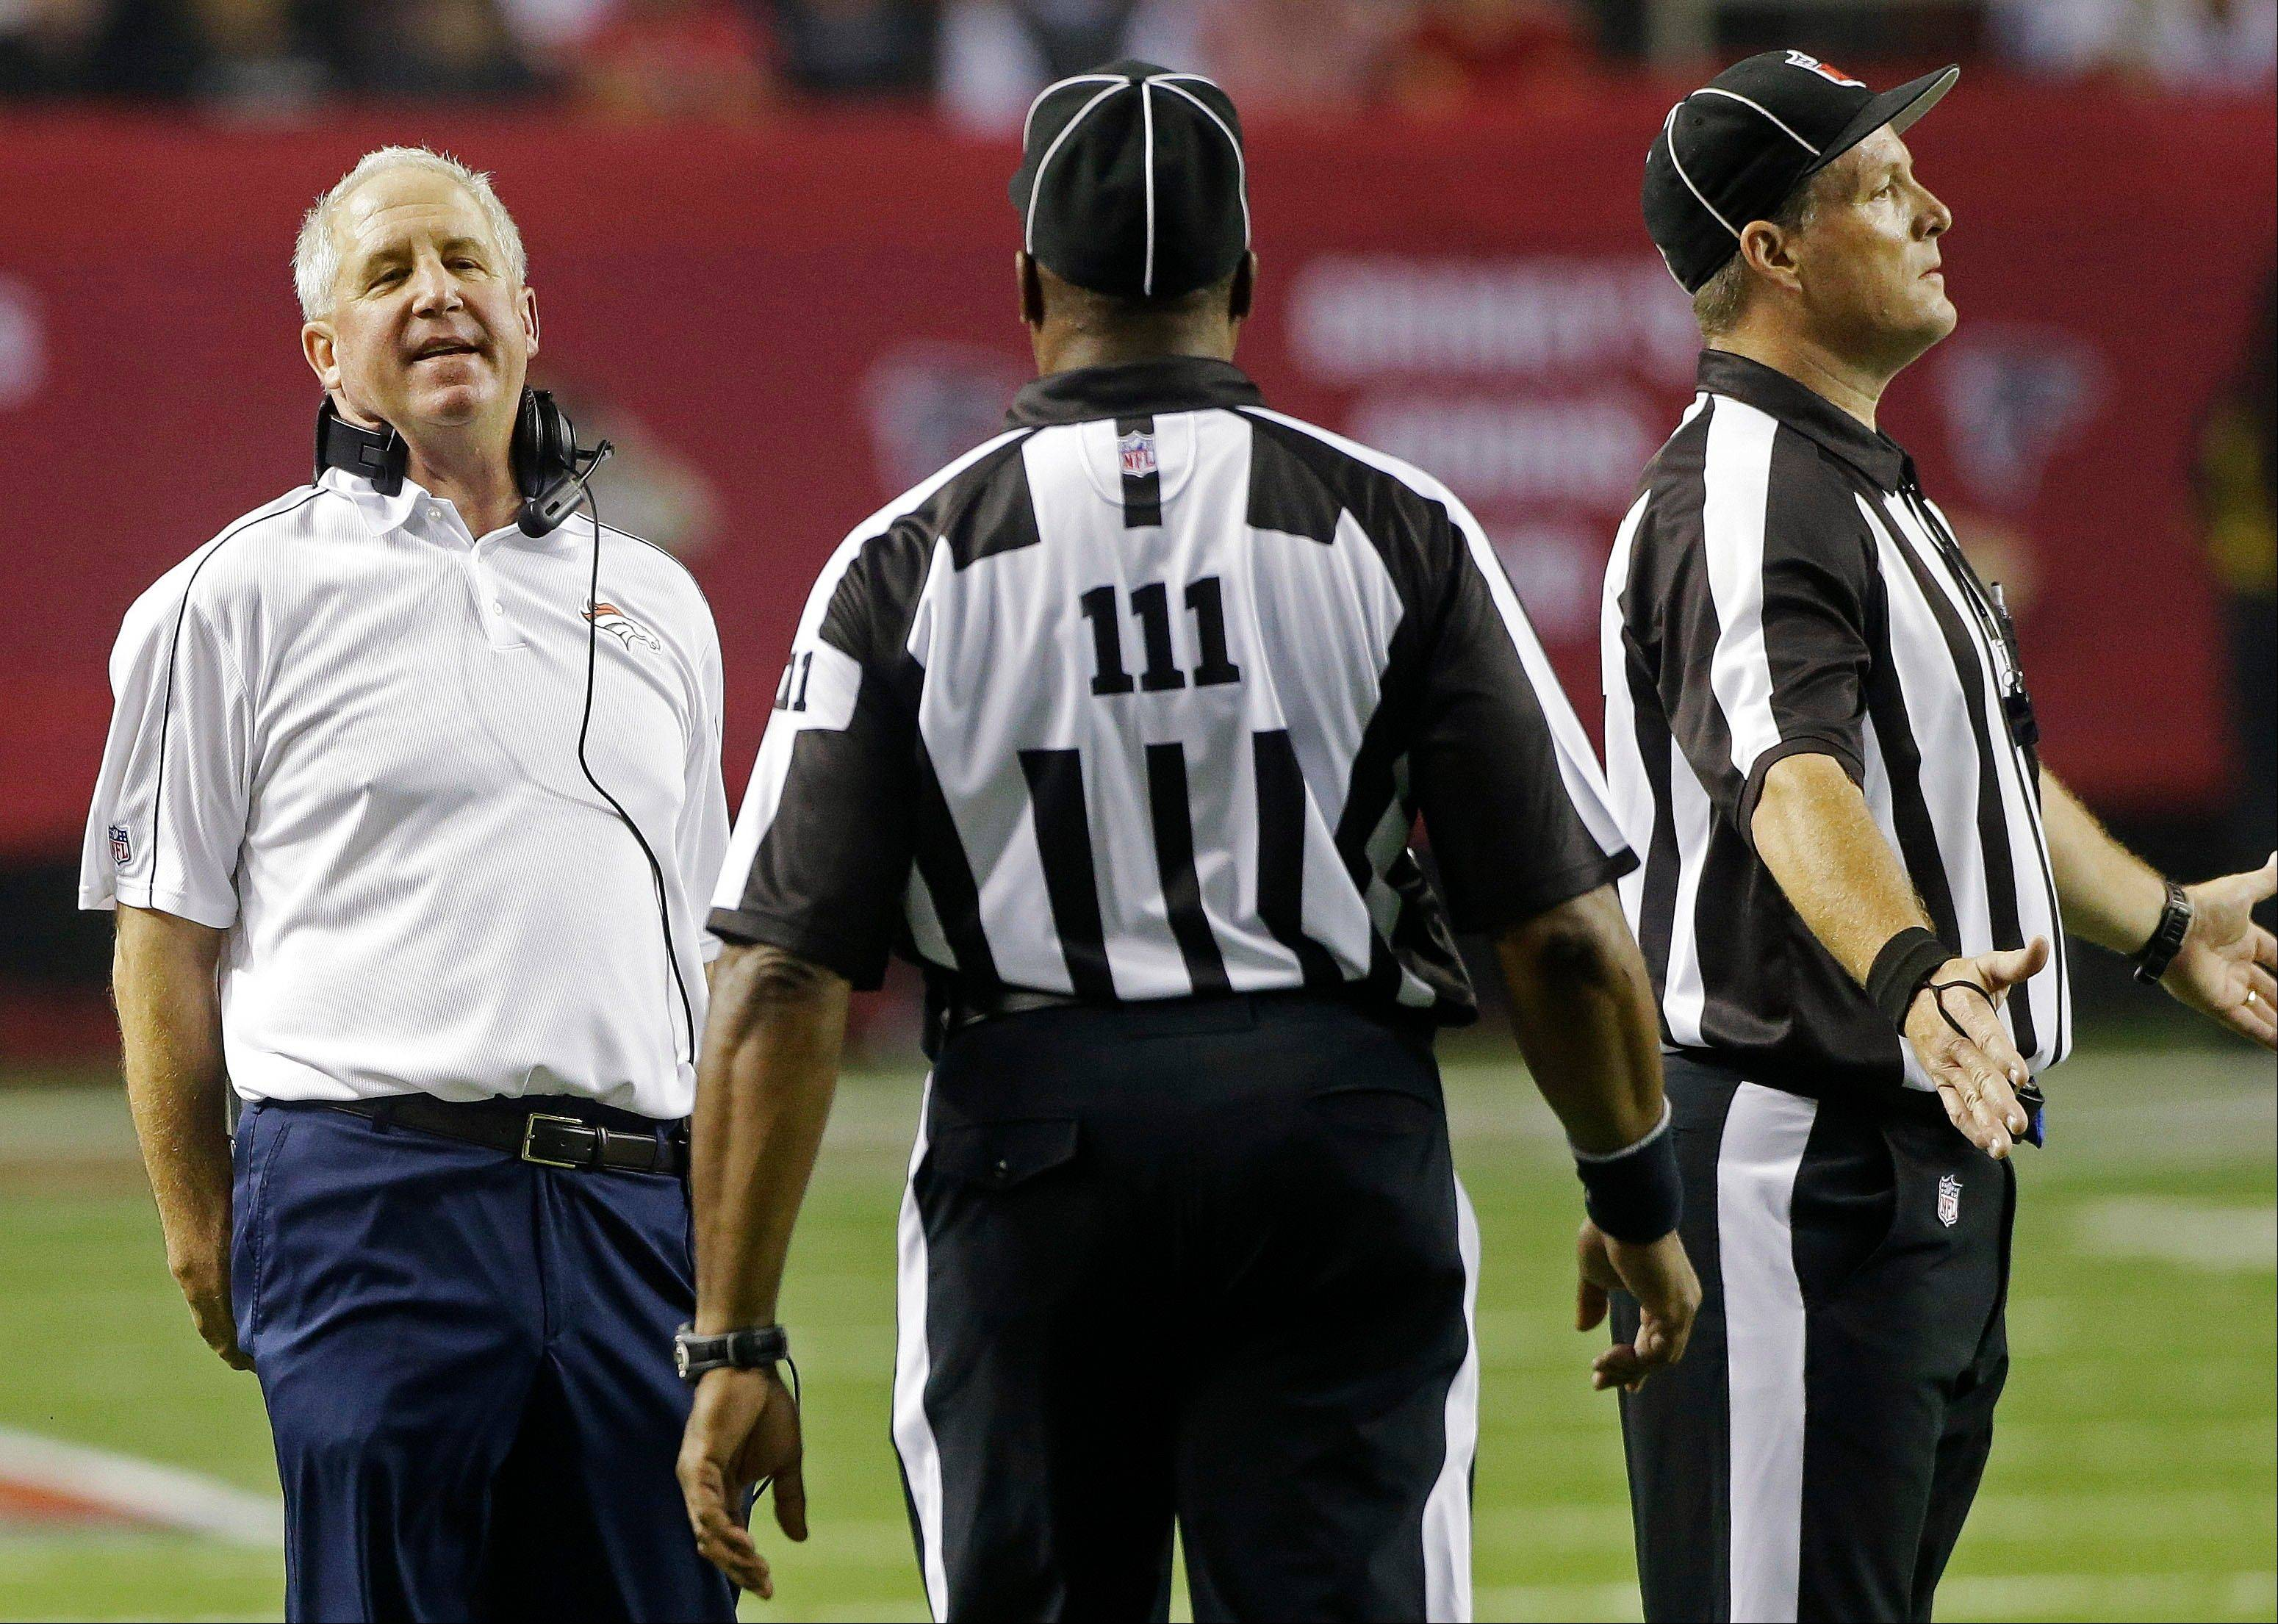 Denver Broncos head coach John Fox, left, speaks to officials during the first half of an NFL football game against the Atlanta Falcons Sept. 17 in Atlanta.